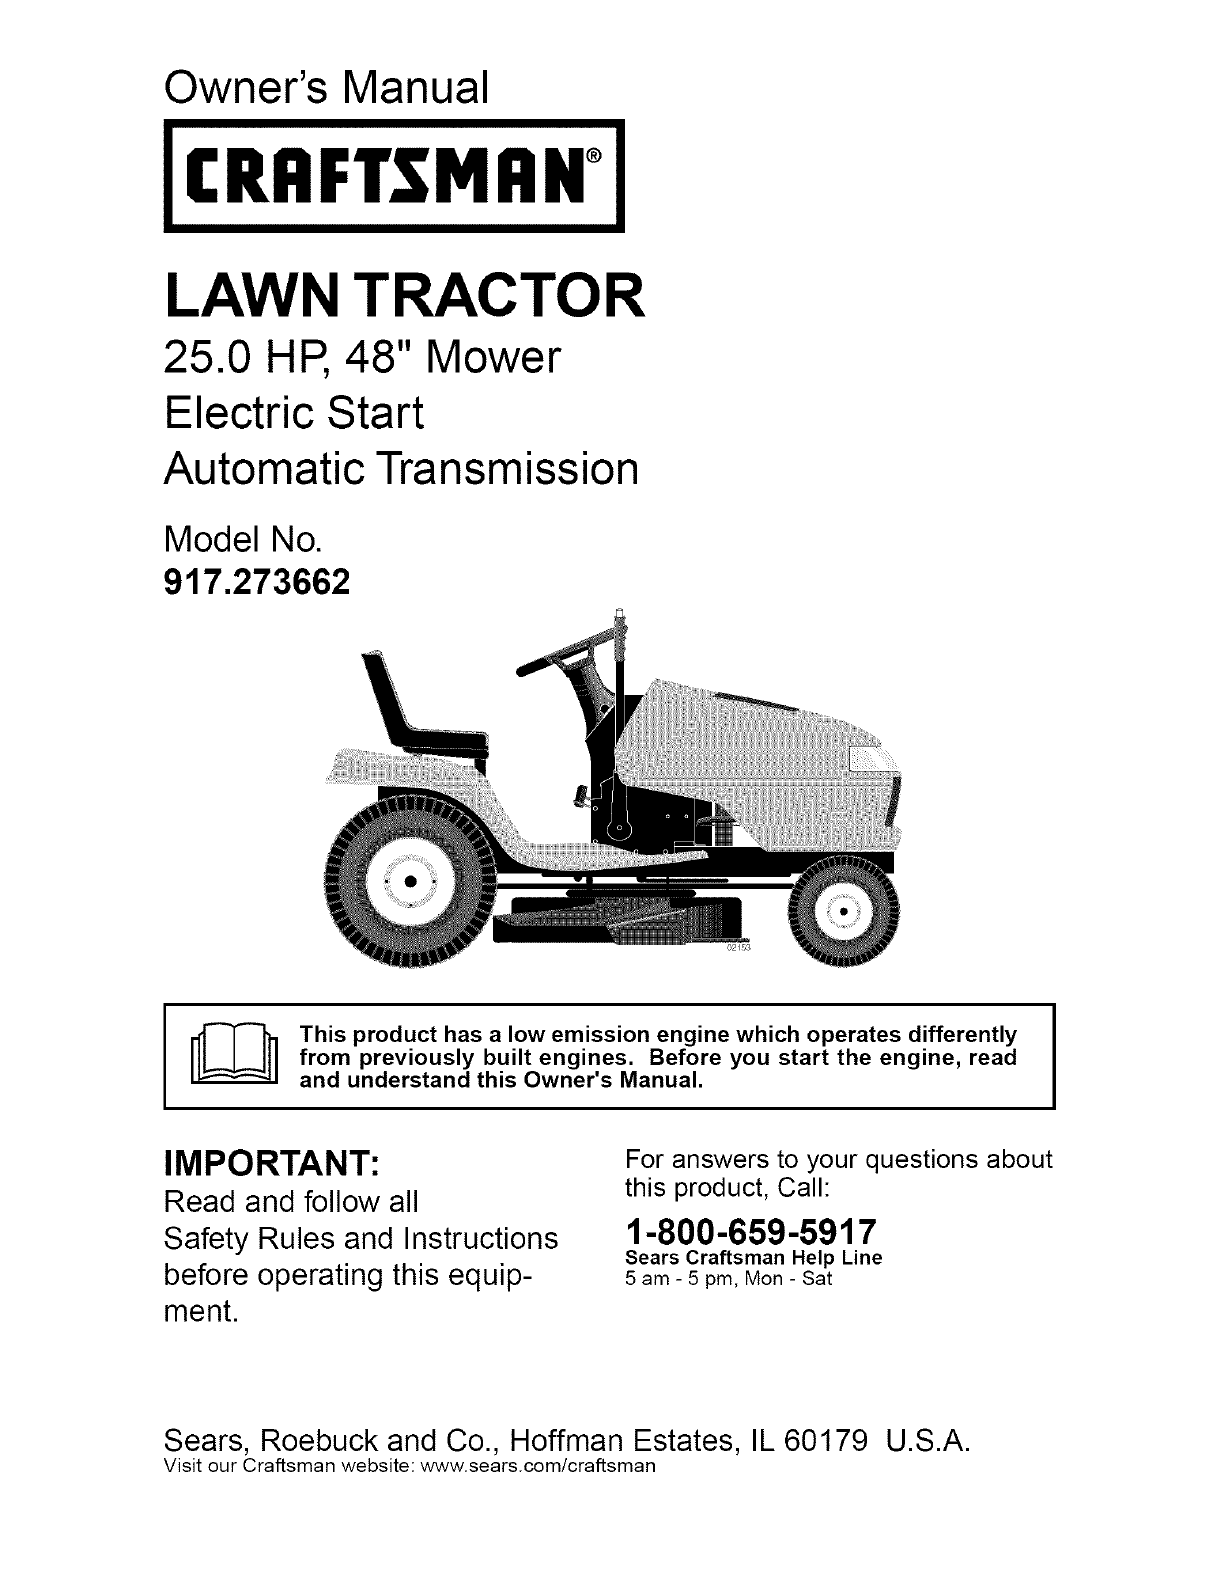 Craftsman 917273662 User Manual LAWN TRACTOR Manuals And Guides ...